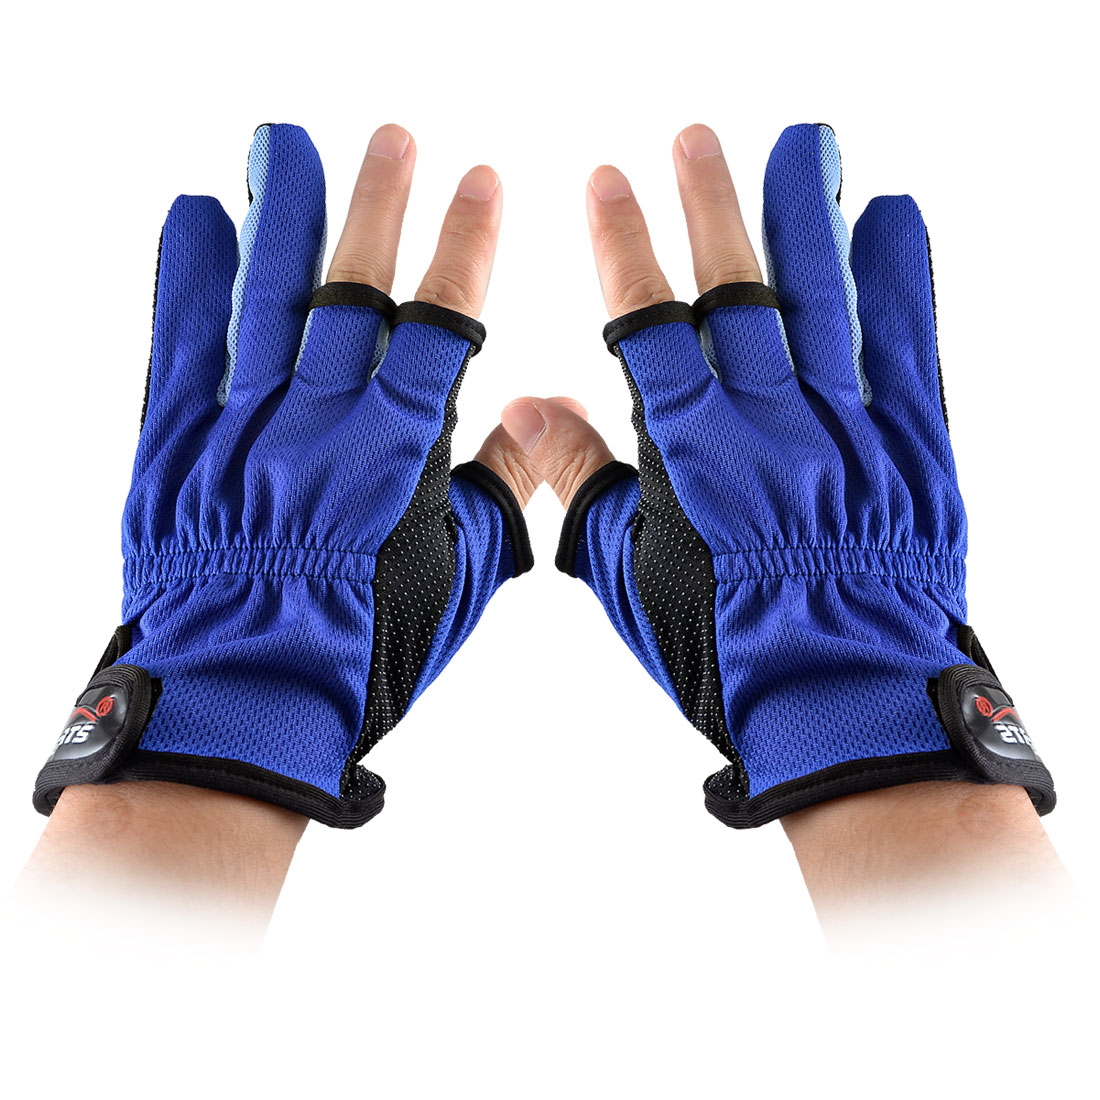 Pair Blue Black Antislip Dots Palm Hook Loop Closure Elastic Fishing Gloves